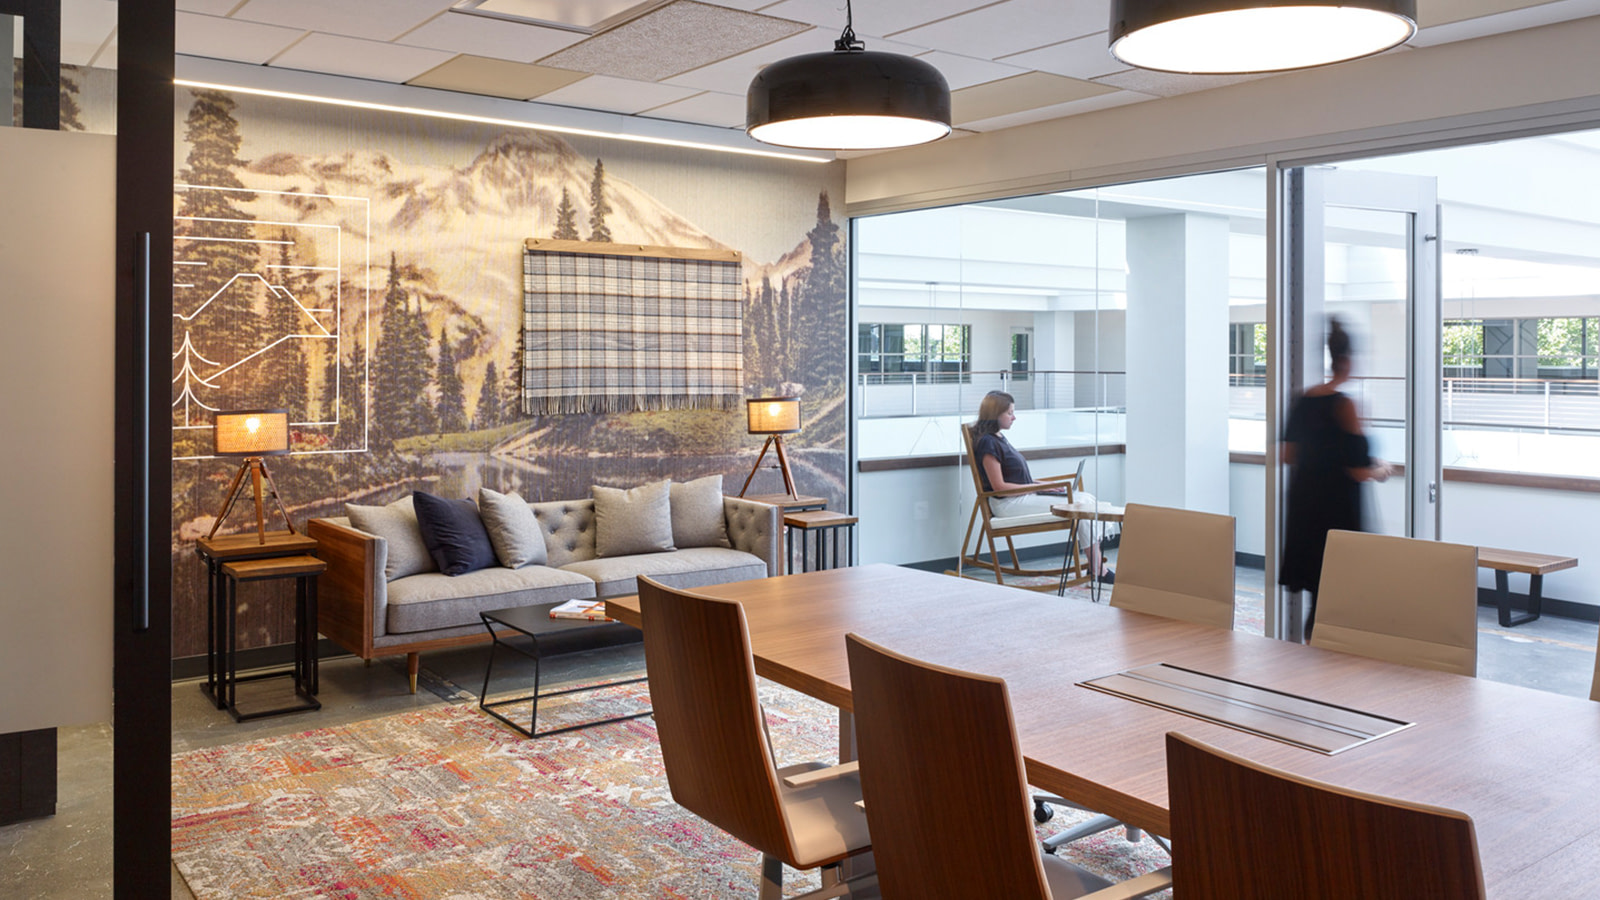 The Seattle offices of Whole Foods show a knit blanket in front of a wallpapered mountain landscape.